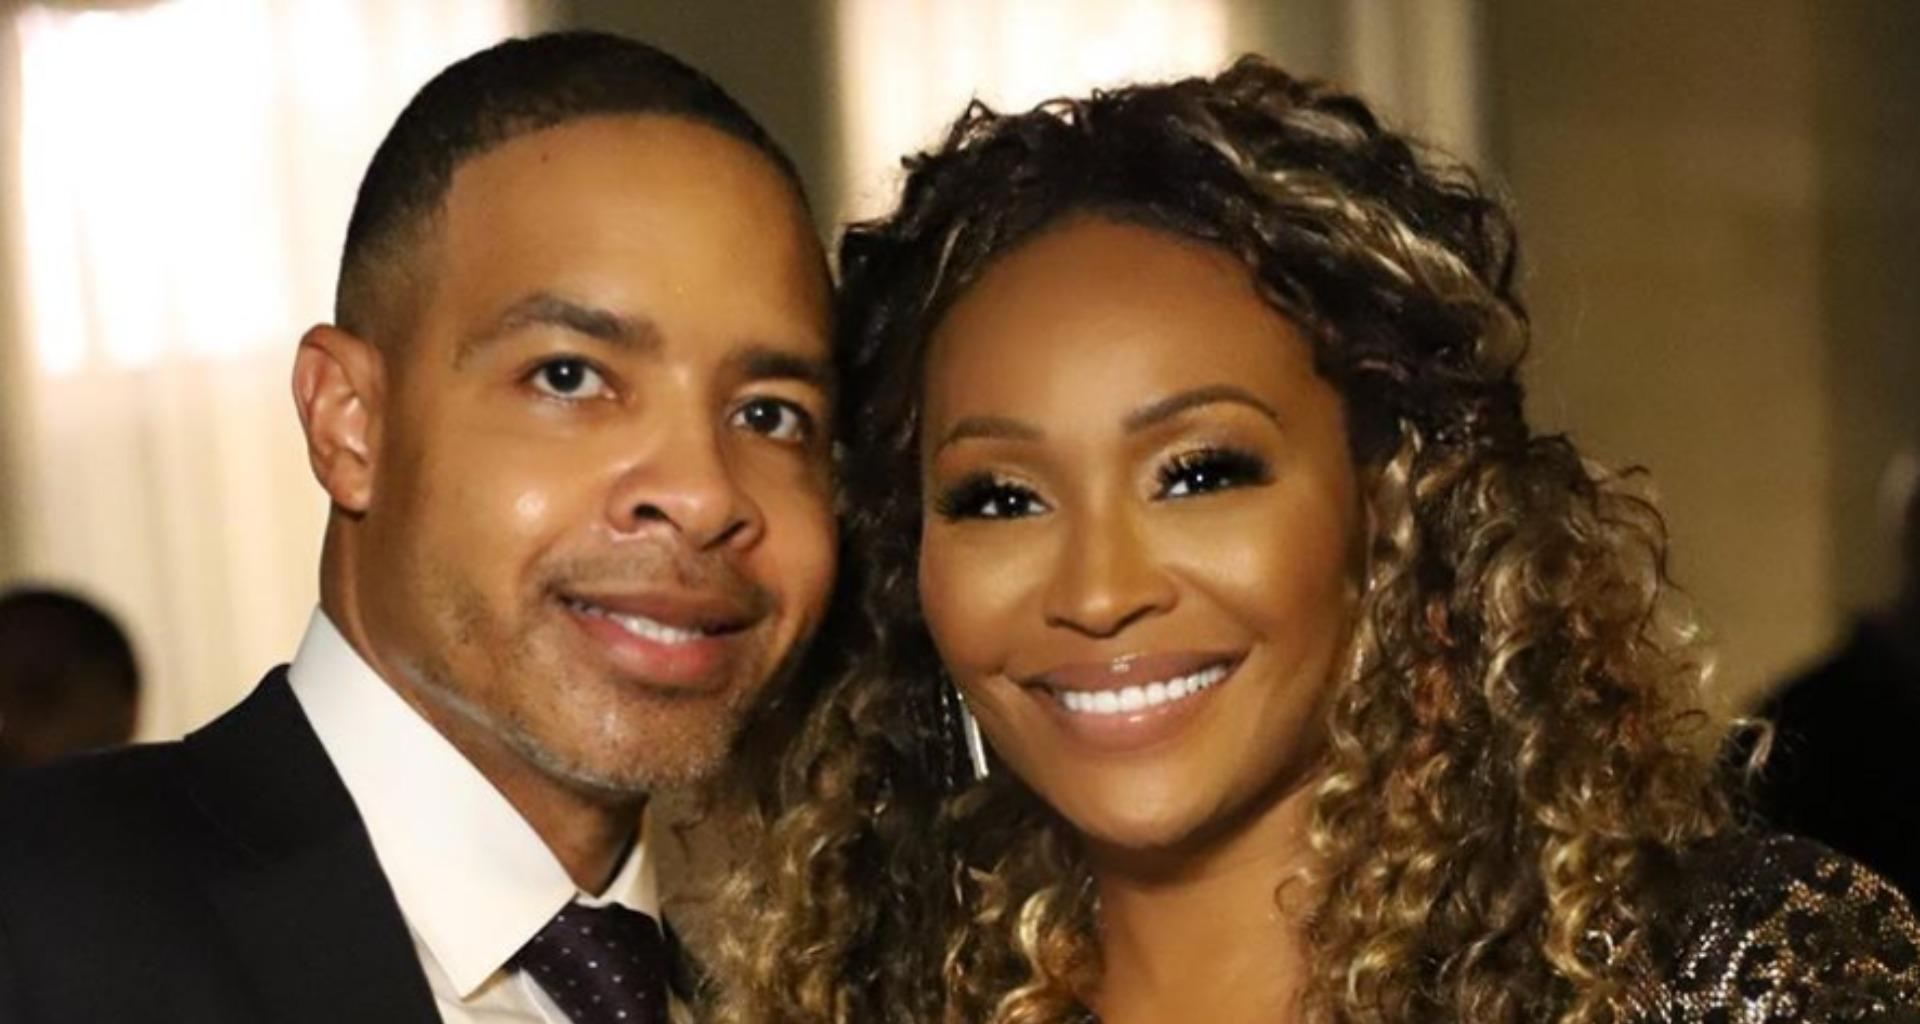 Cynthia Bailey Documents Her Amazing Face Treatment For Fans - See The Clips And Pics